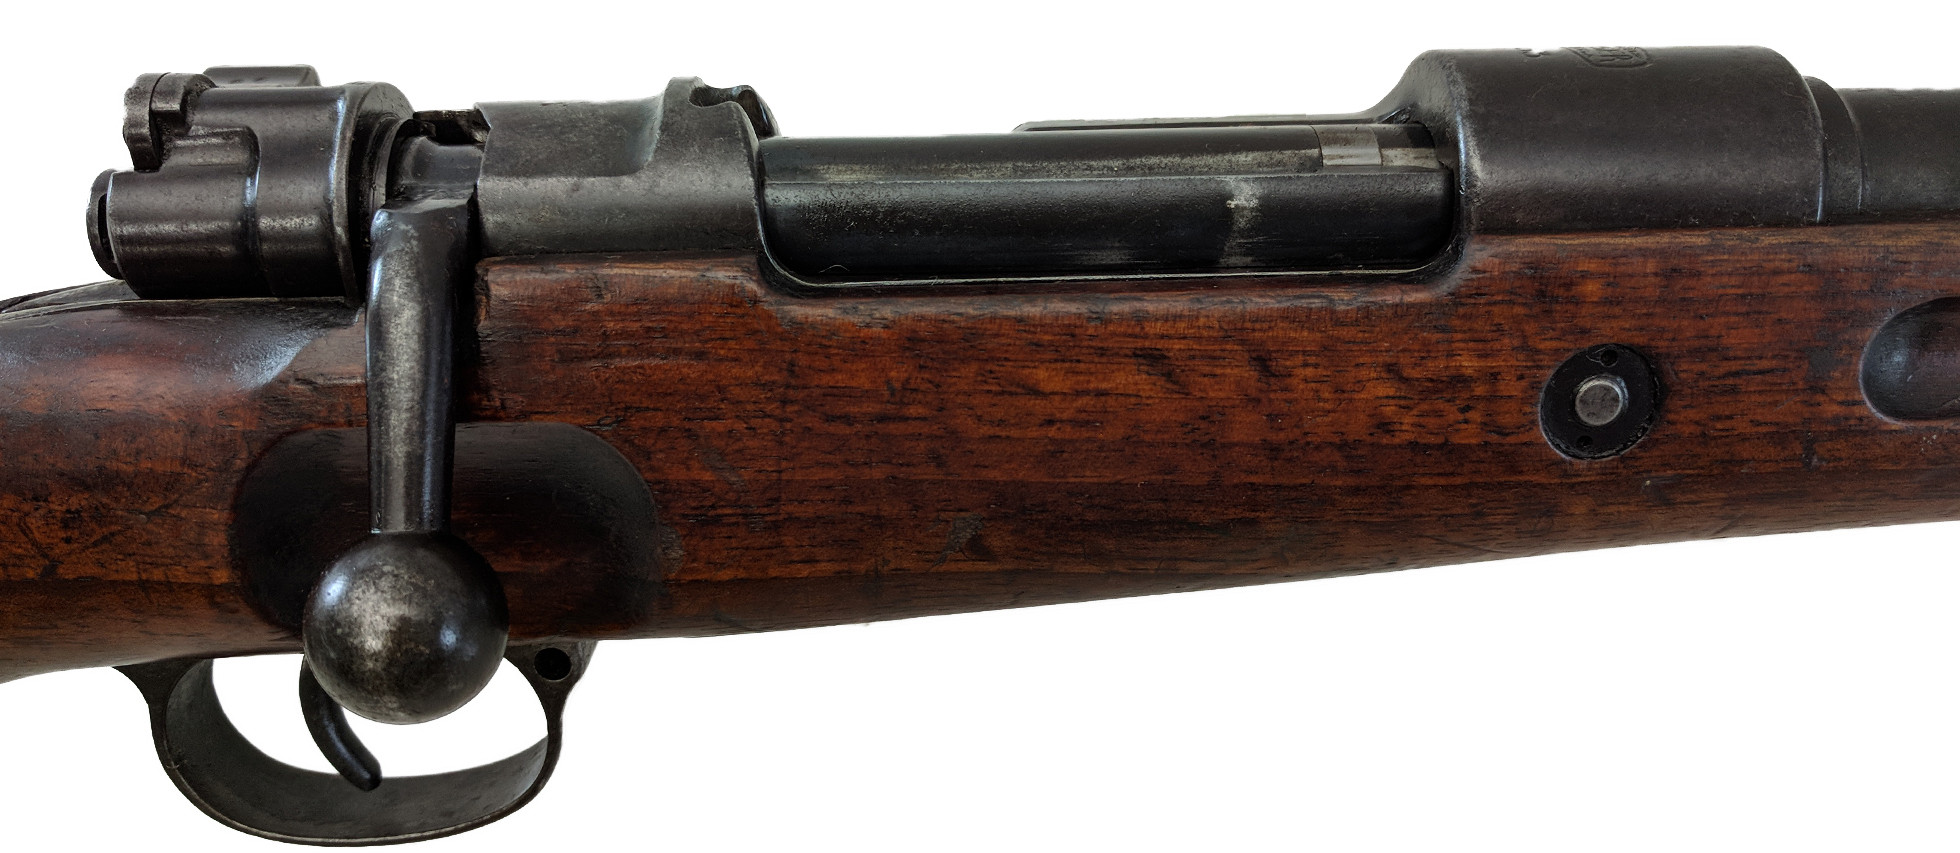 Mauser Standard-Modell Carbine, SA Marked, 8mm, *Good*